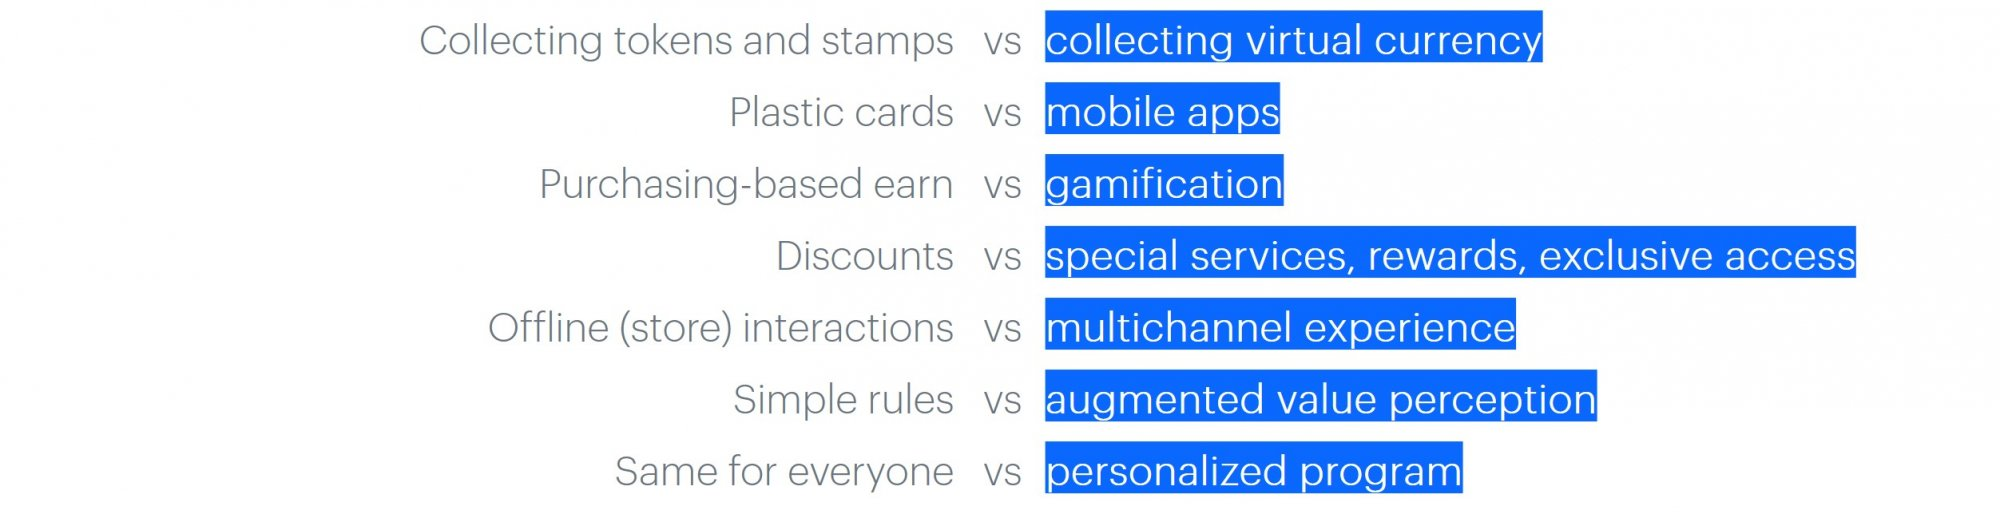 What has changed with the introduction of mobile loyalty programs